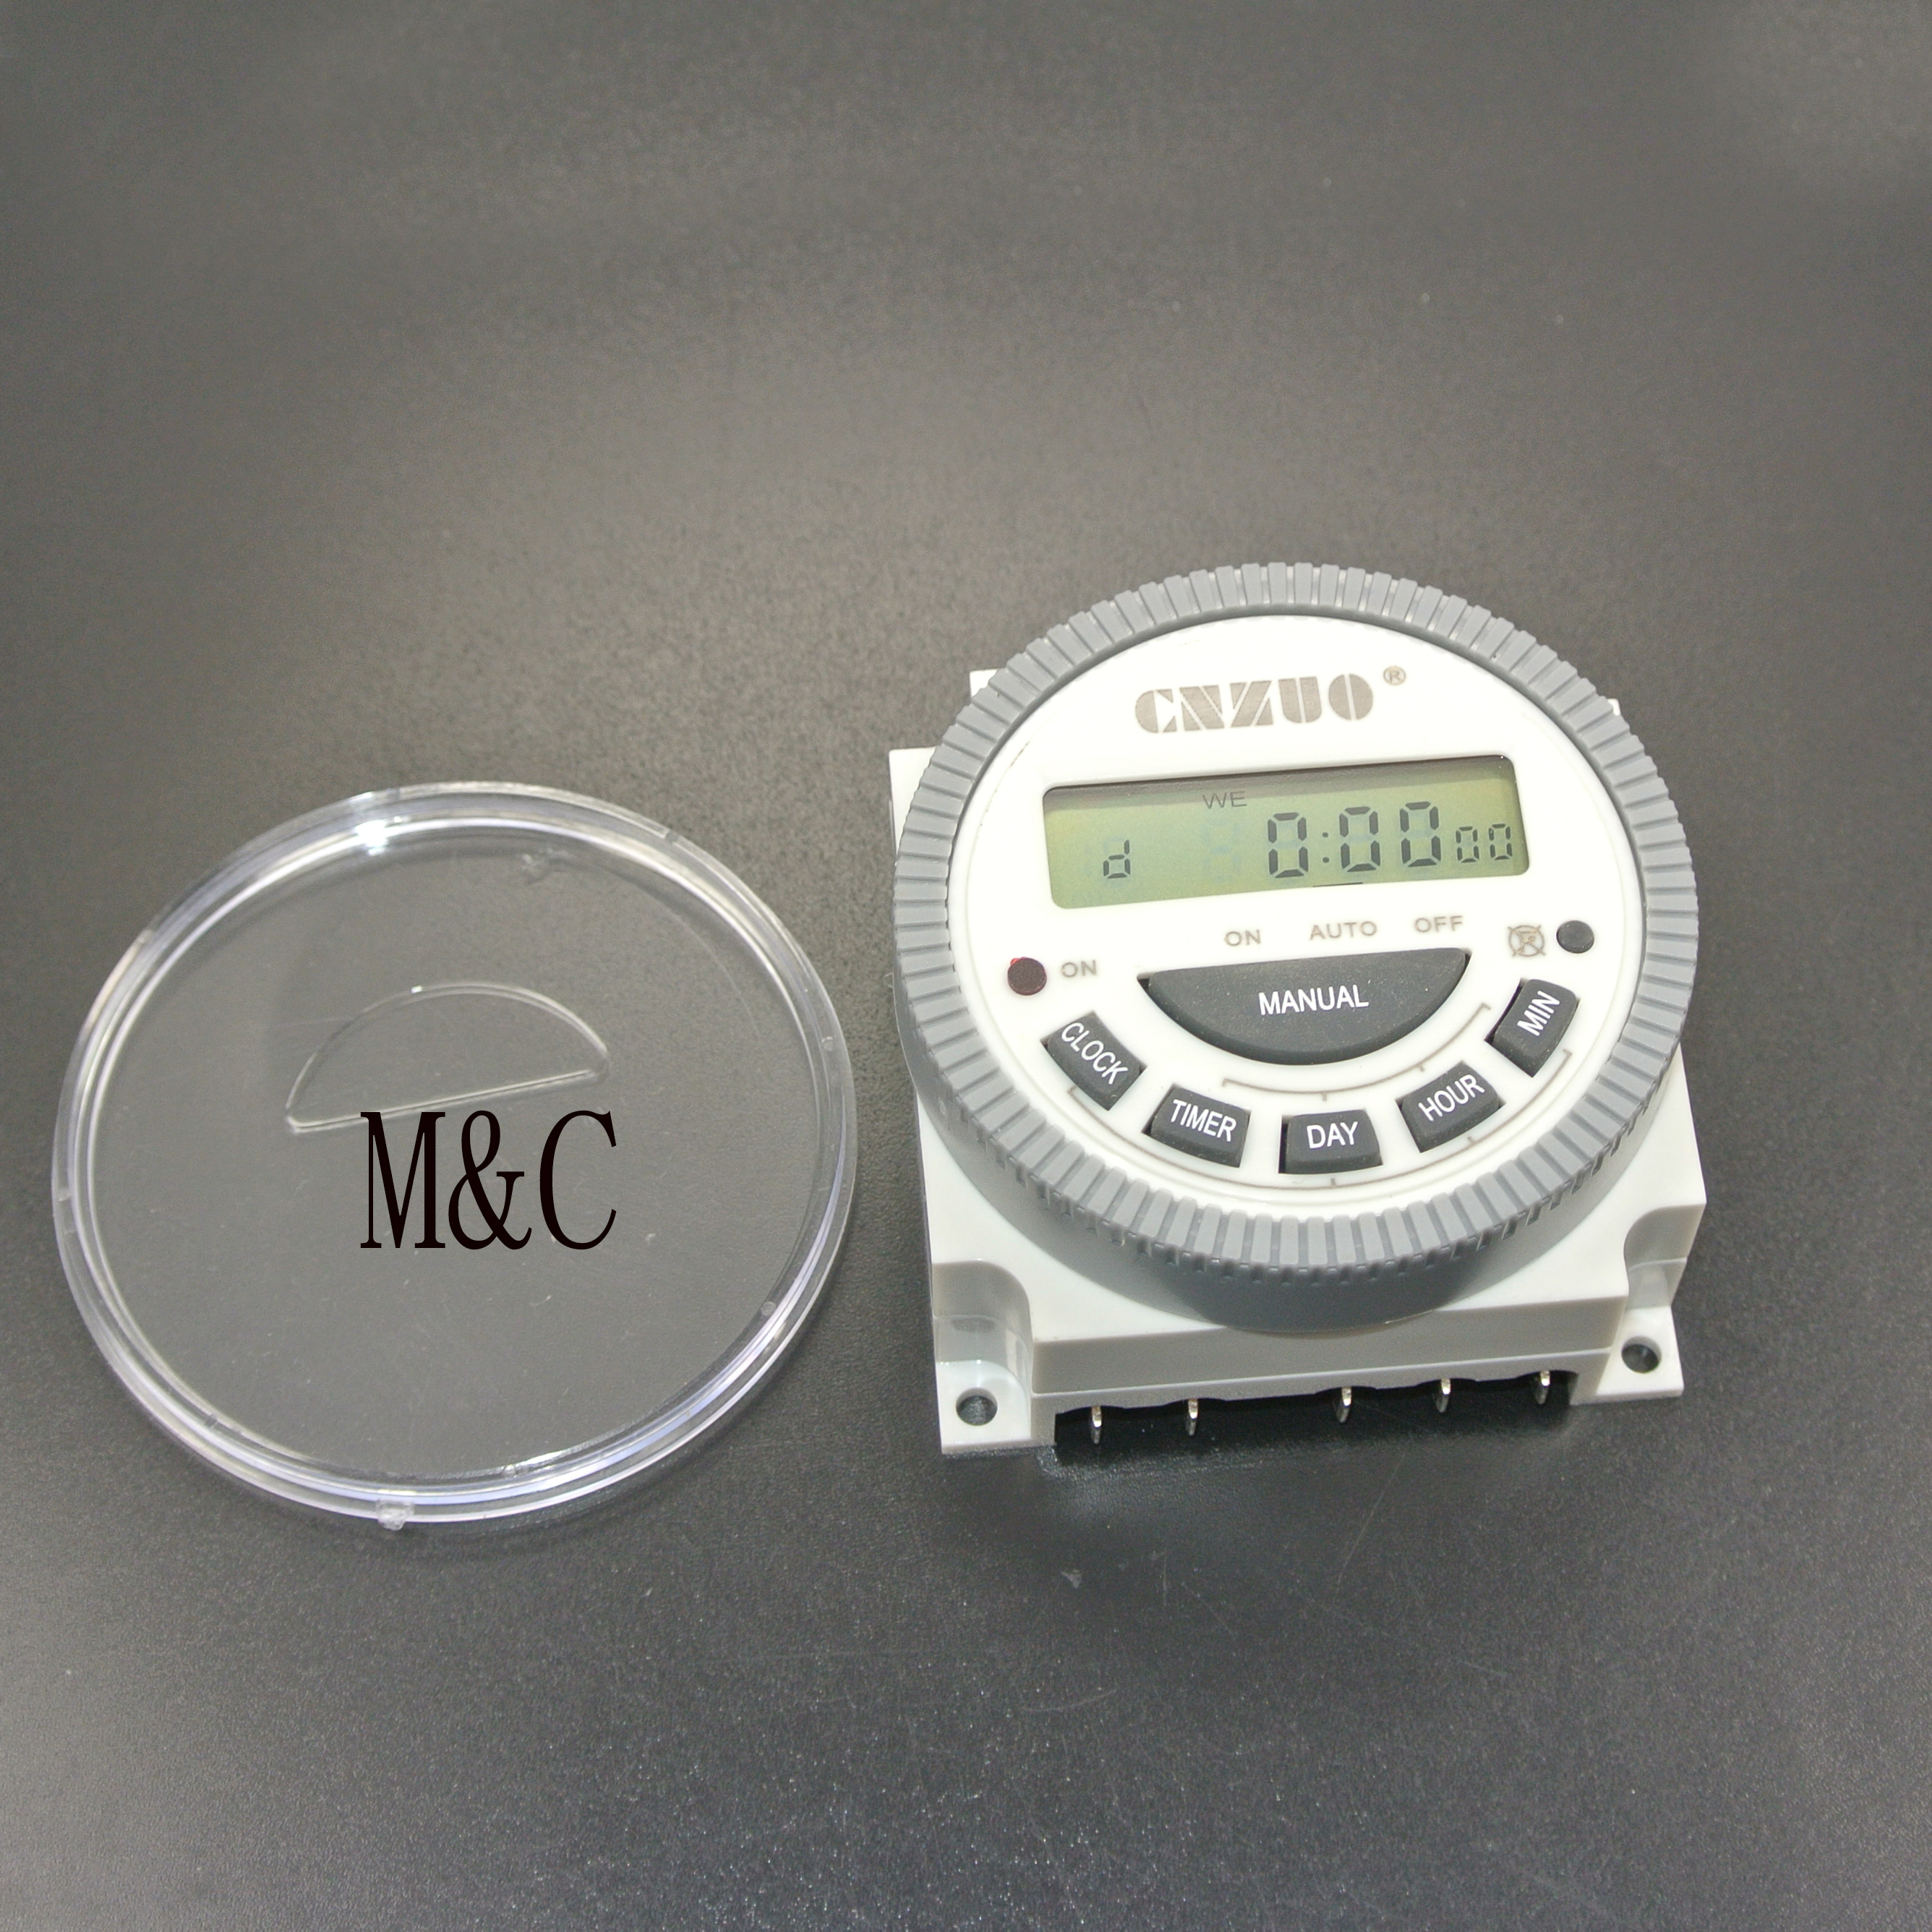 hight resolution of 220vac 110vac 12vdc 24vdc digital timer switch with waterproof cover output easy wiring 7 days programmable time switch